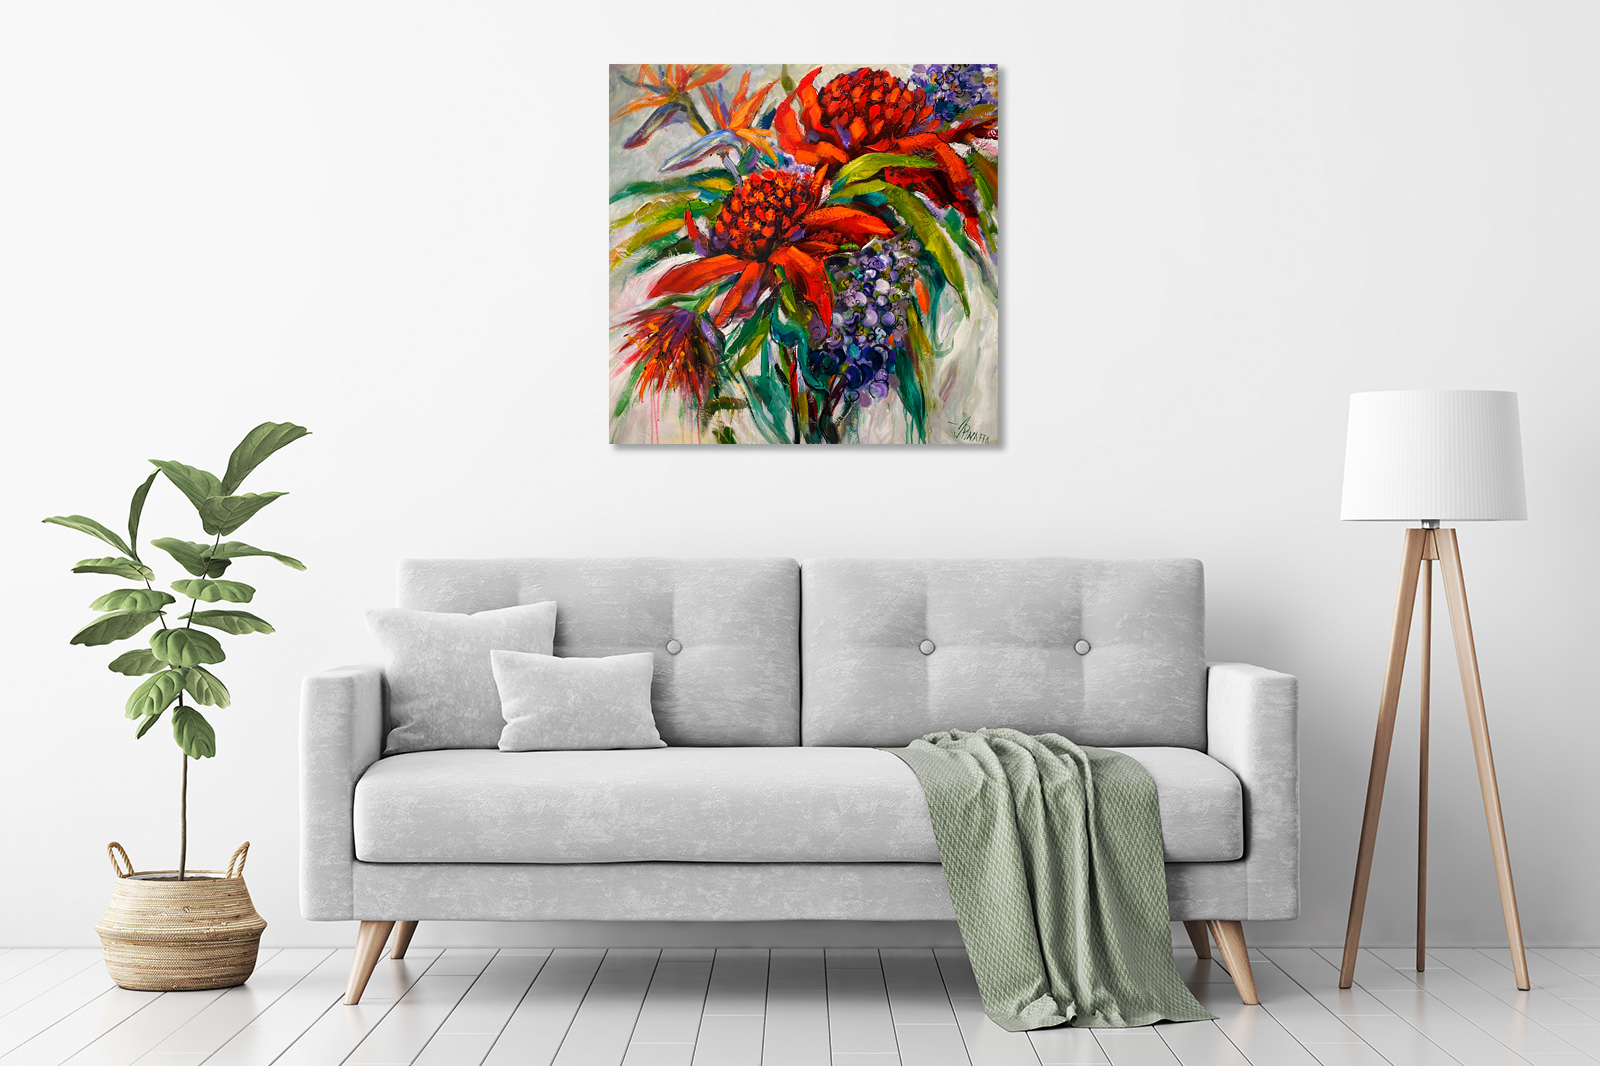 Red Waratahs and More in a room